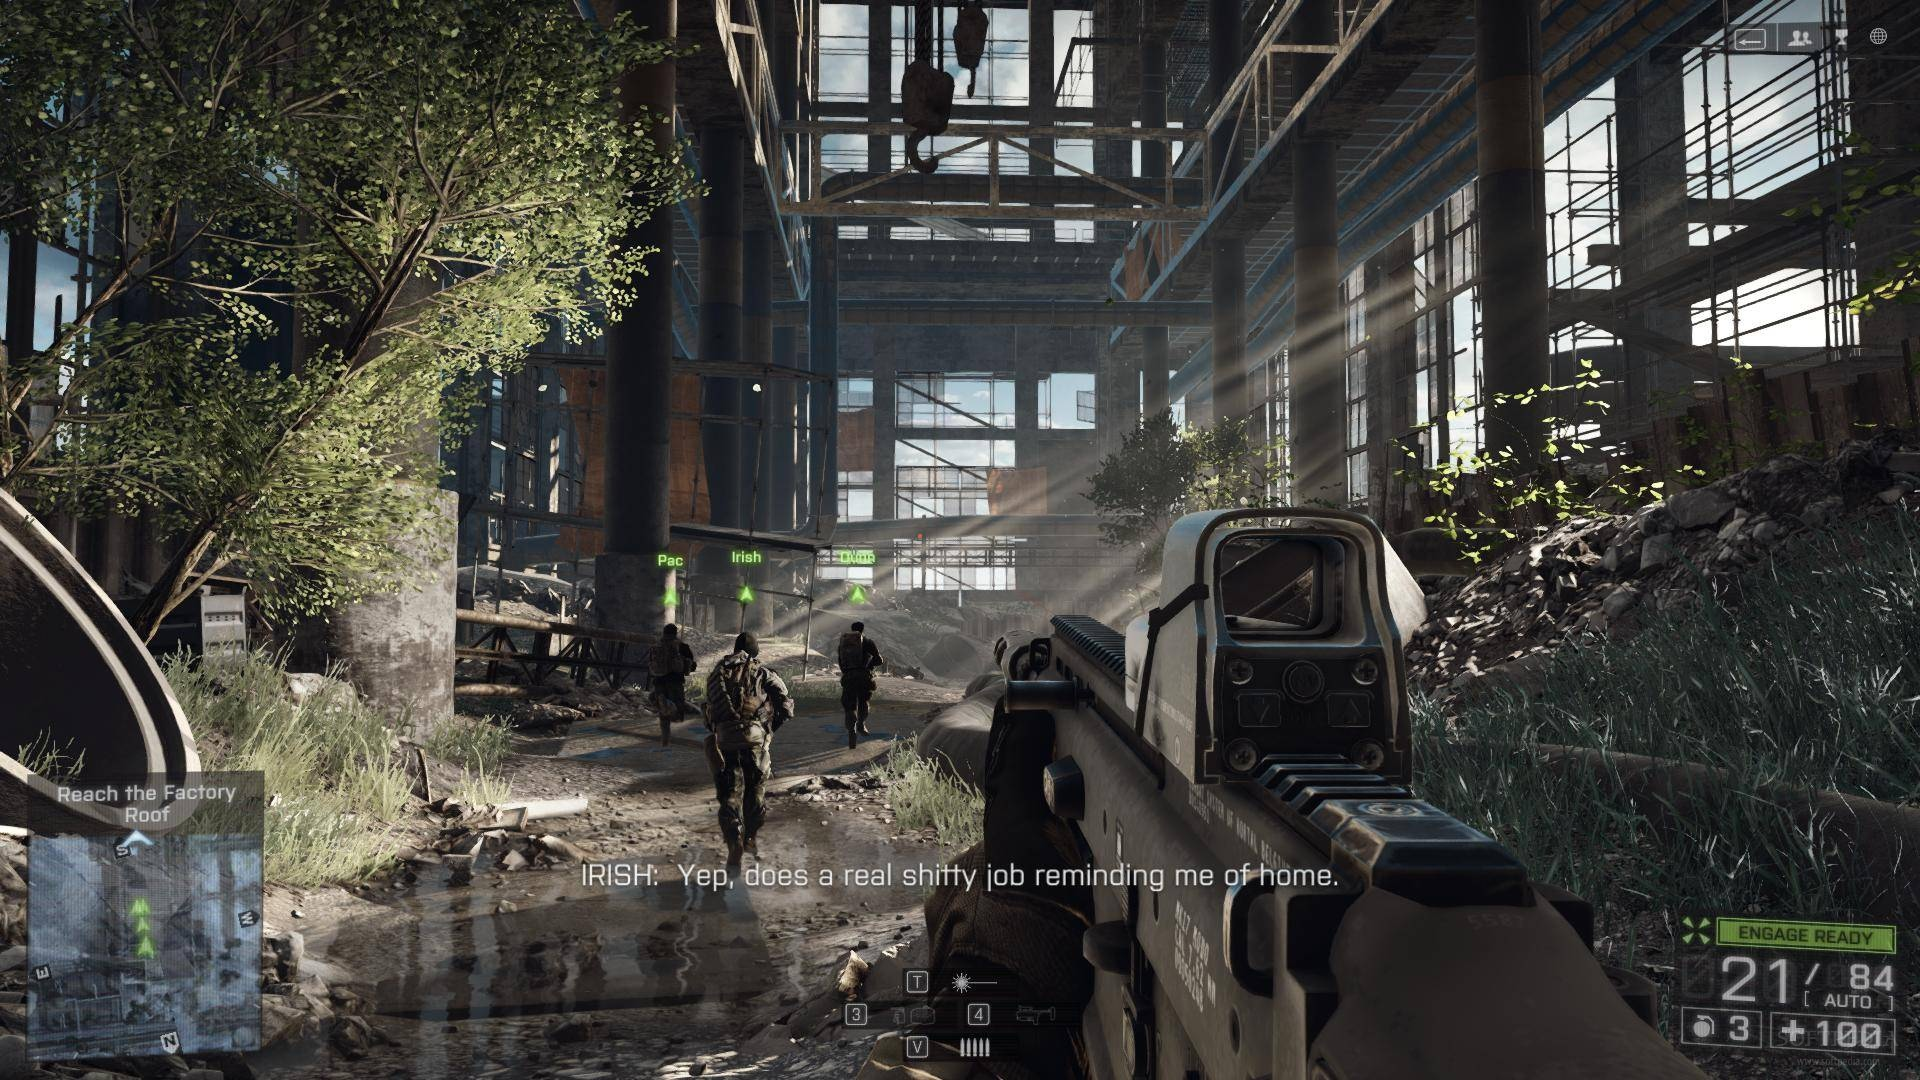 Battlefield 4 Updates Coming to Xbox 360 and PC Soon, DICE Promises